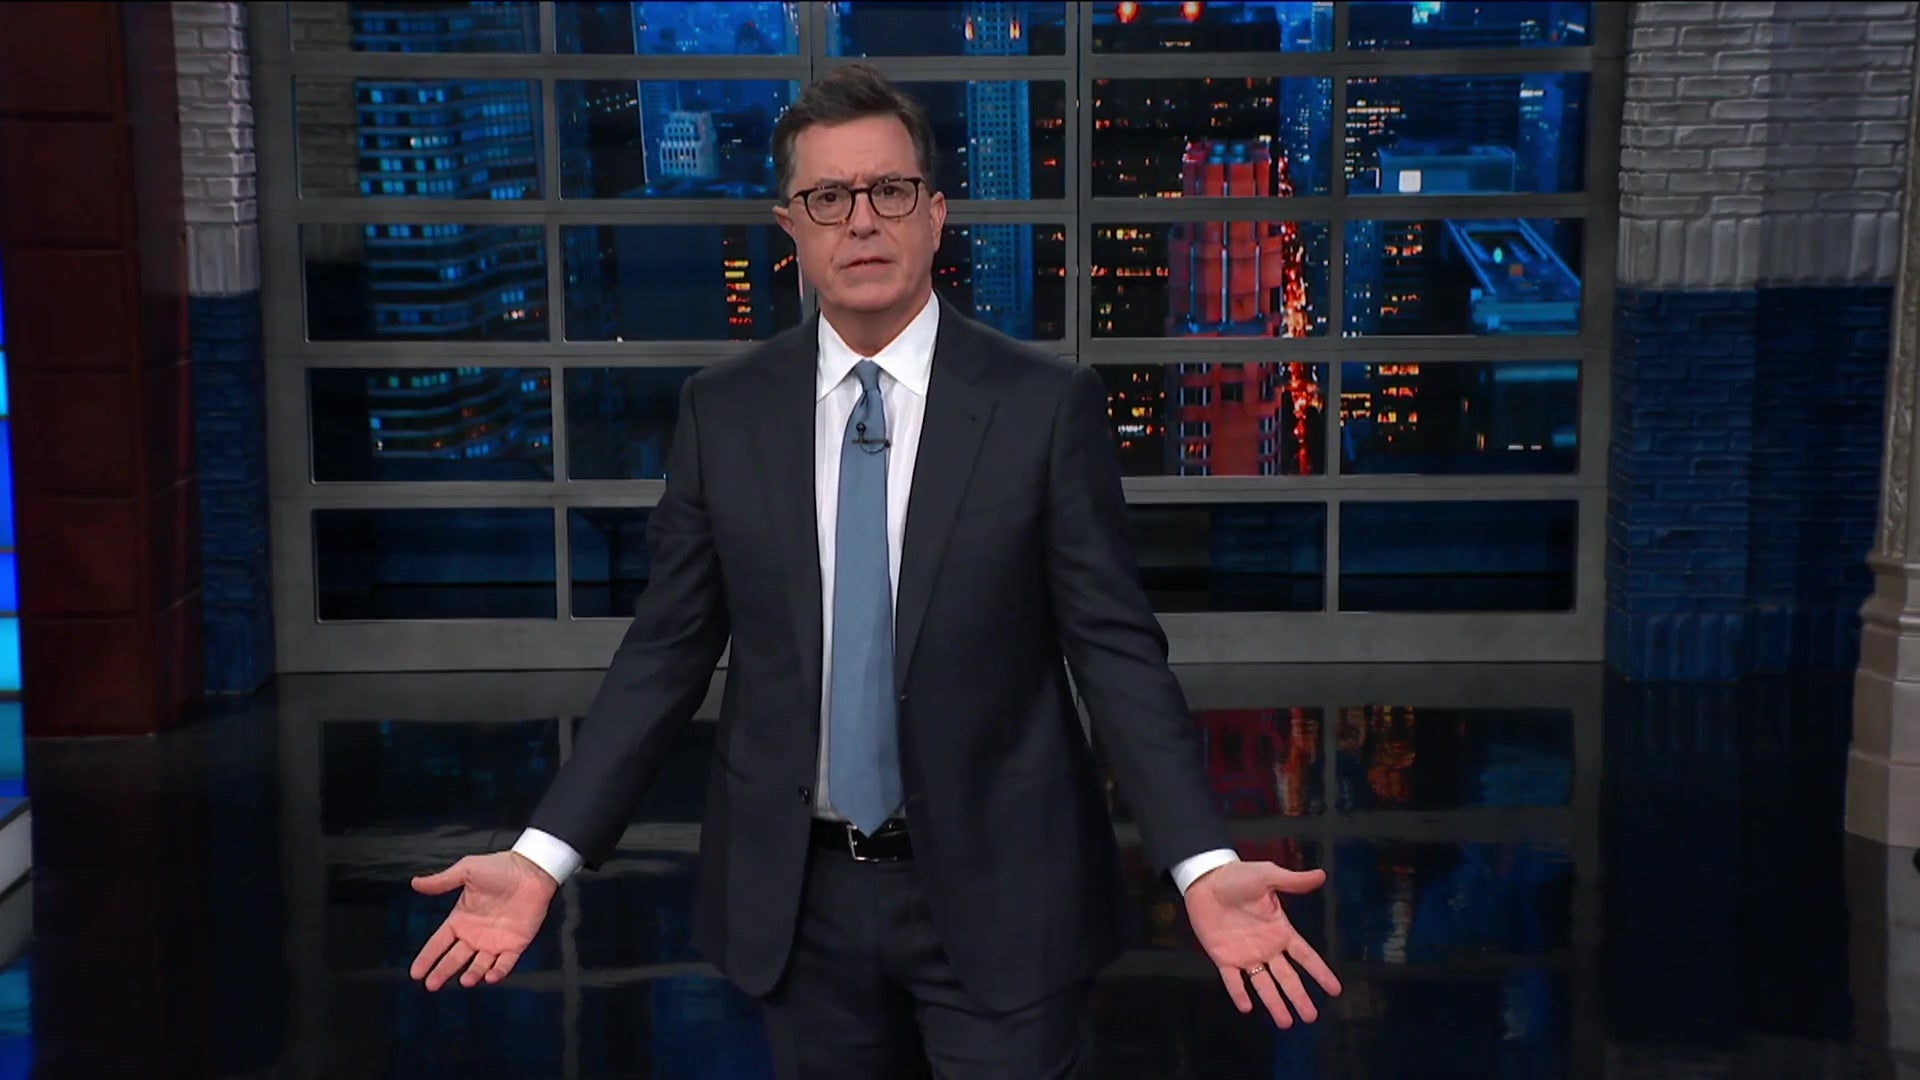 Stephen Colbert delivering a monologue.